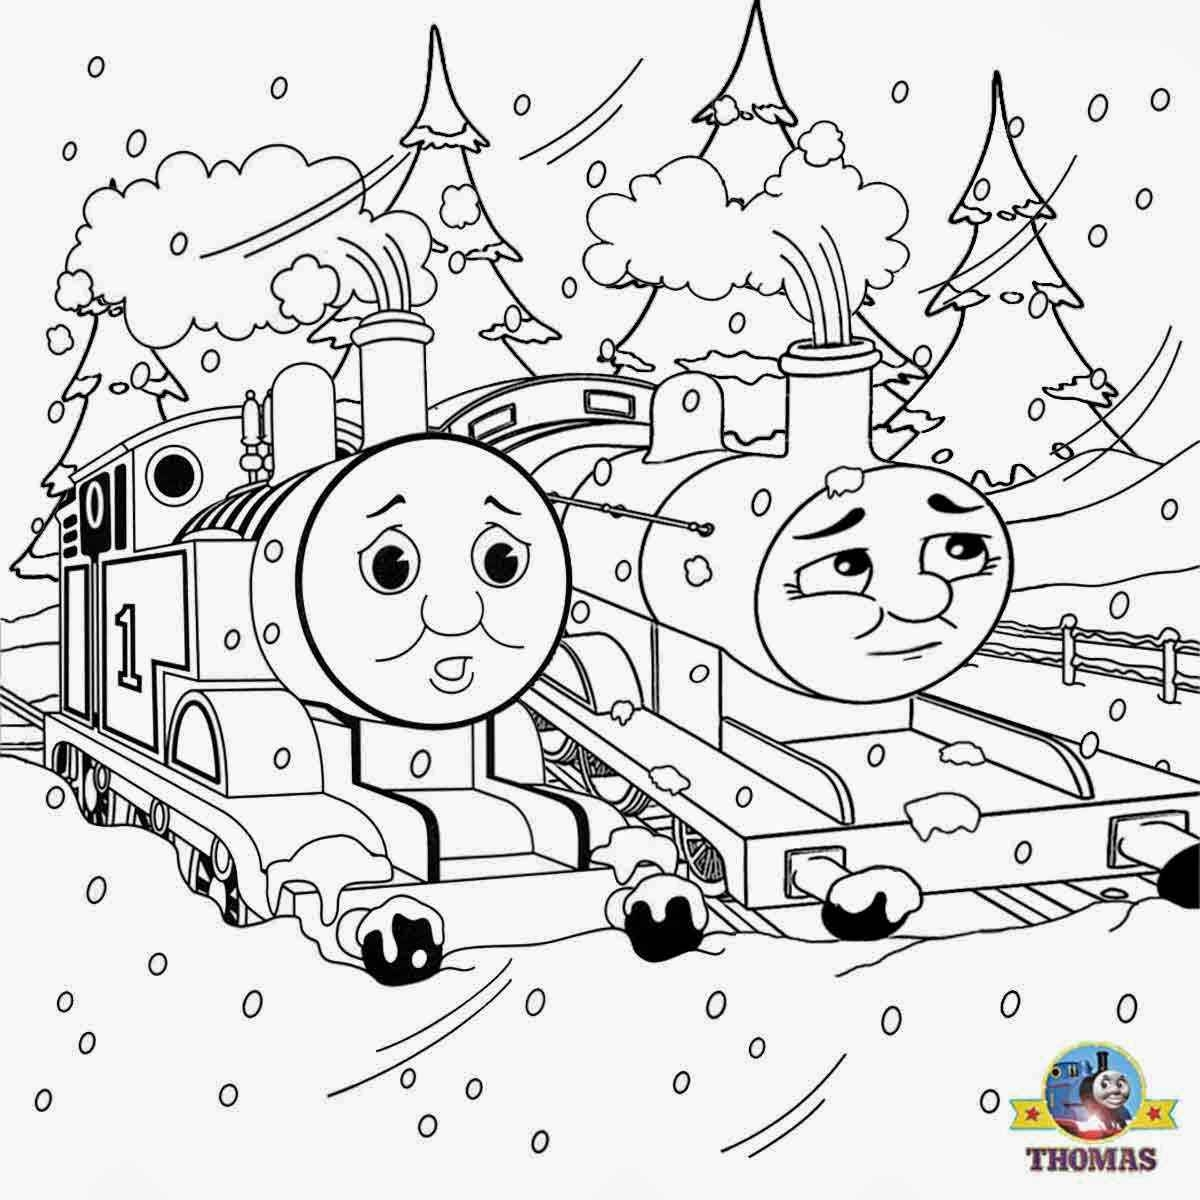 Thomas The Train Halloween Coloring Pages At Getdrawings